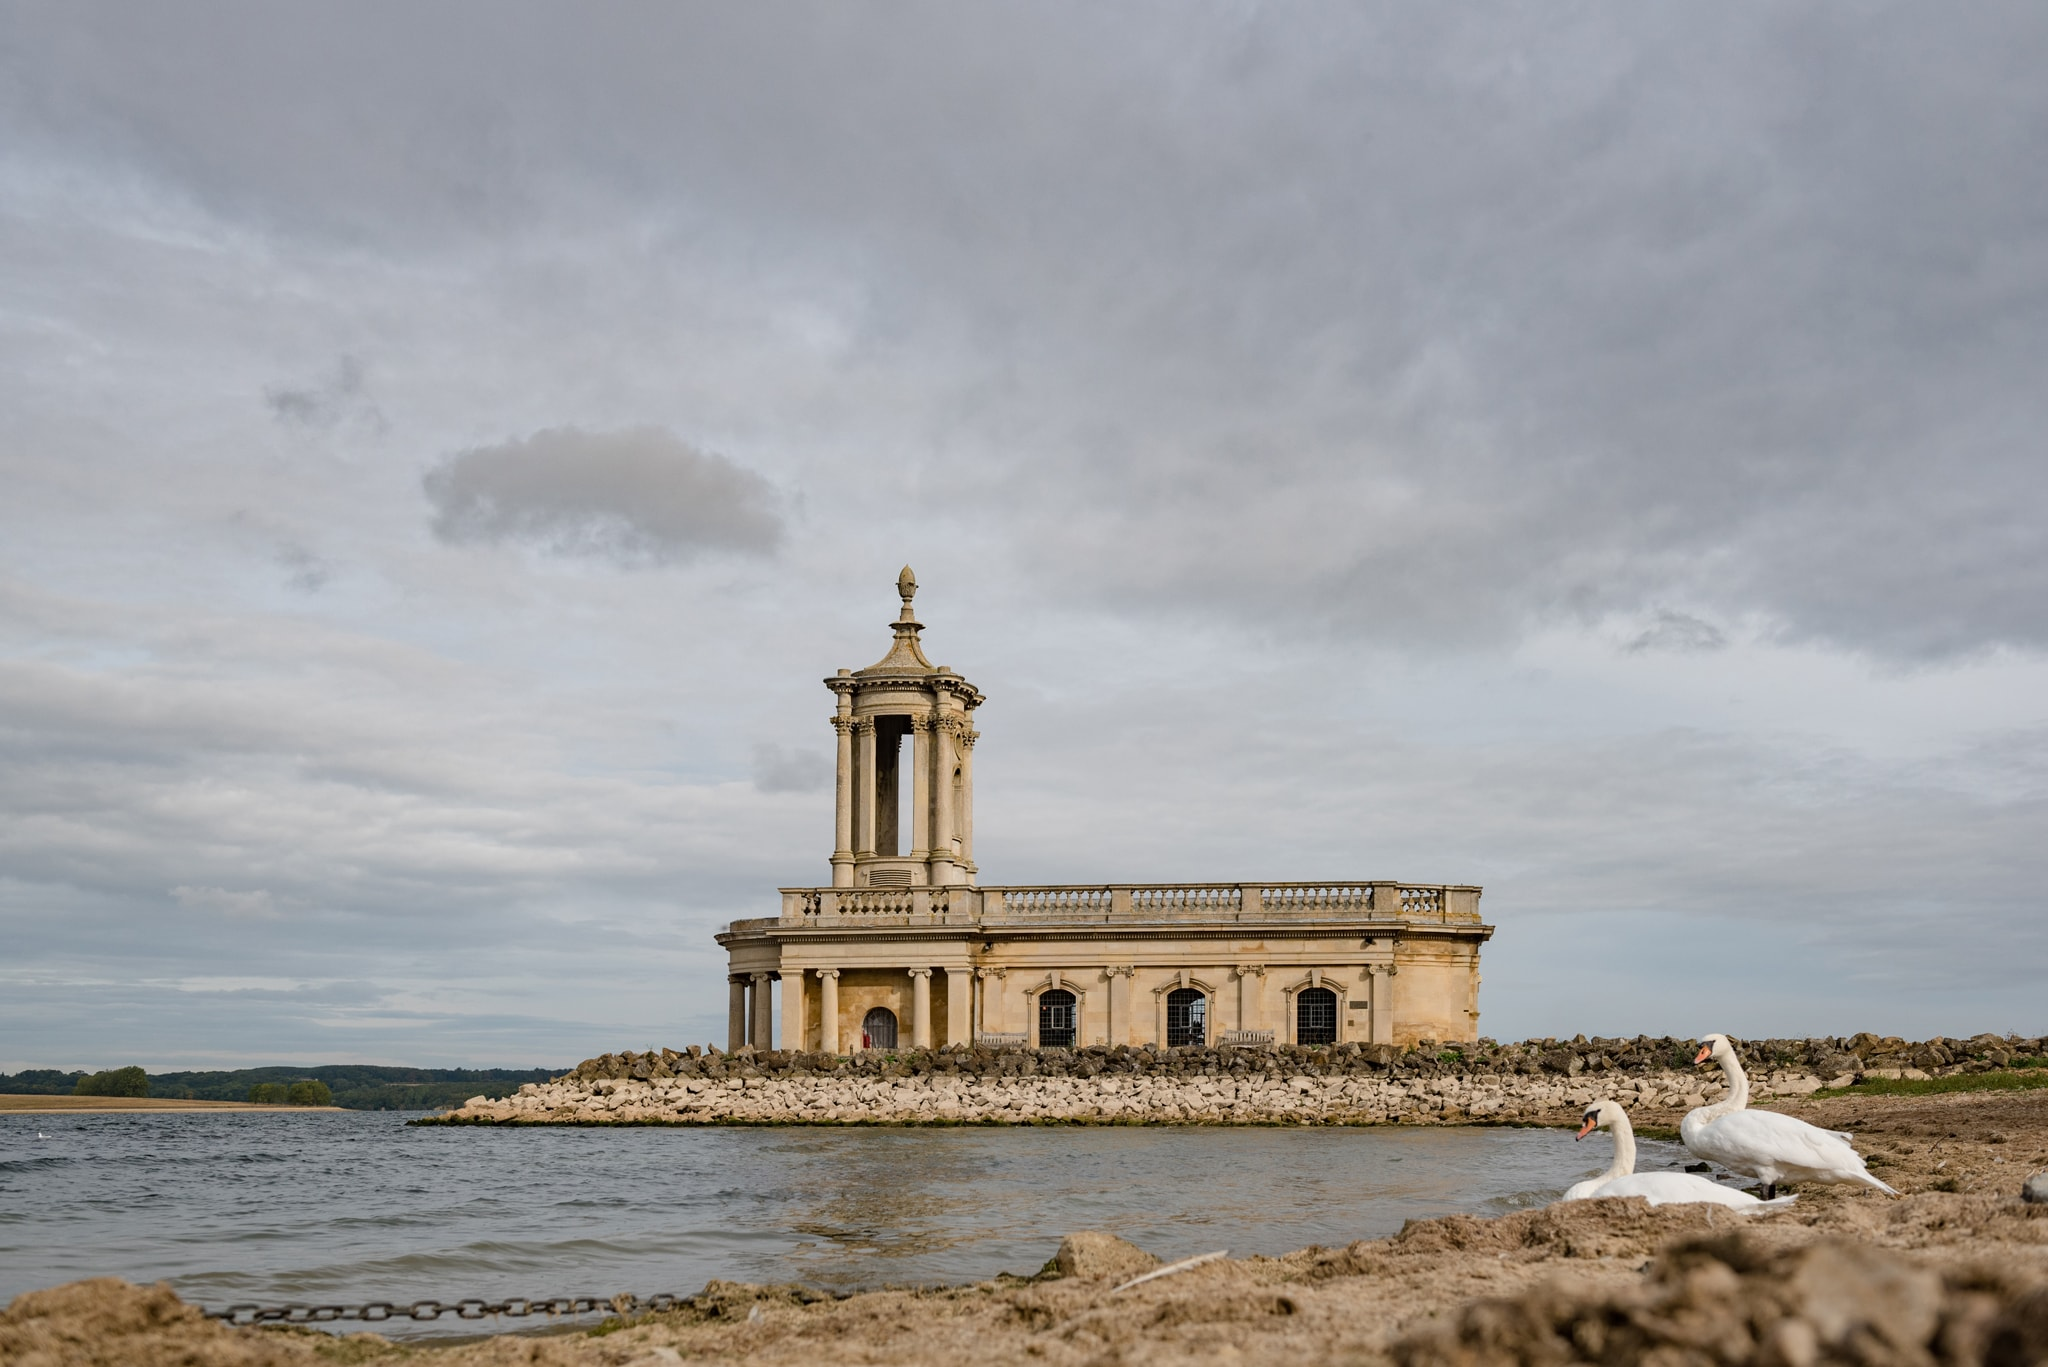 Normanton church with two swans in the foreground